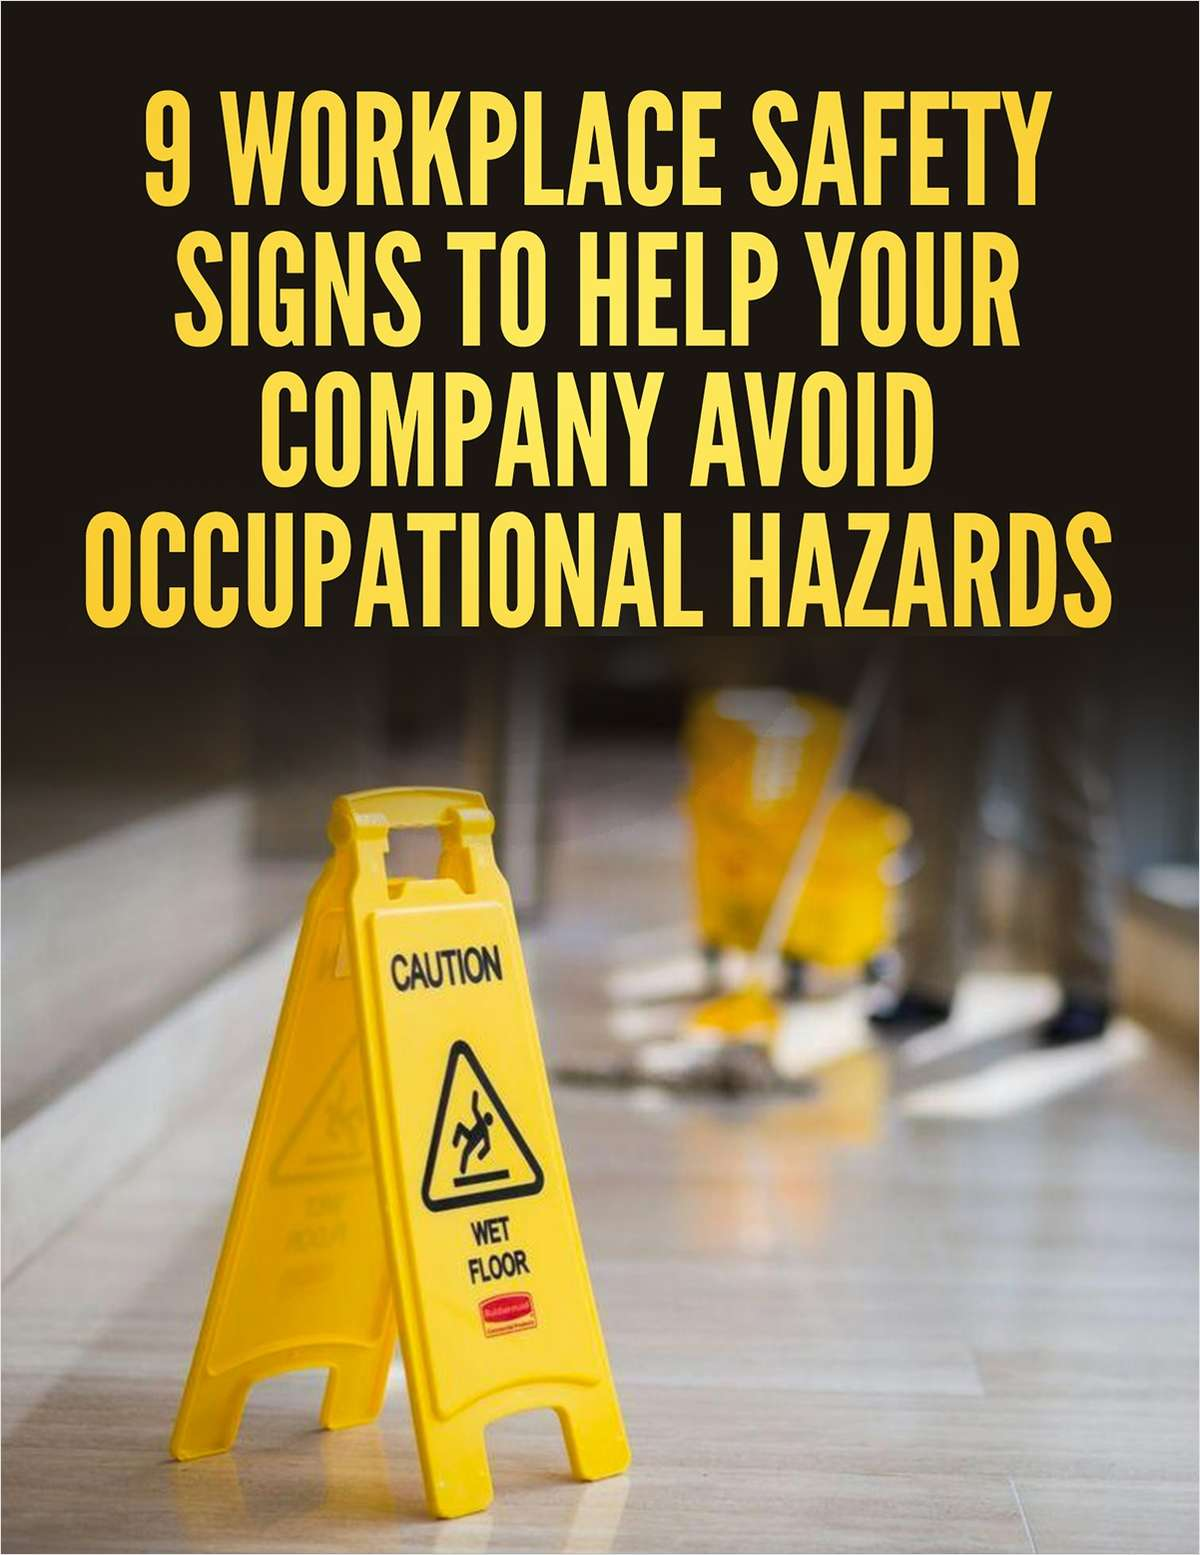 9 Workplace Safety Signs To Help Your Company Avoid